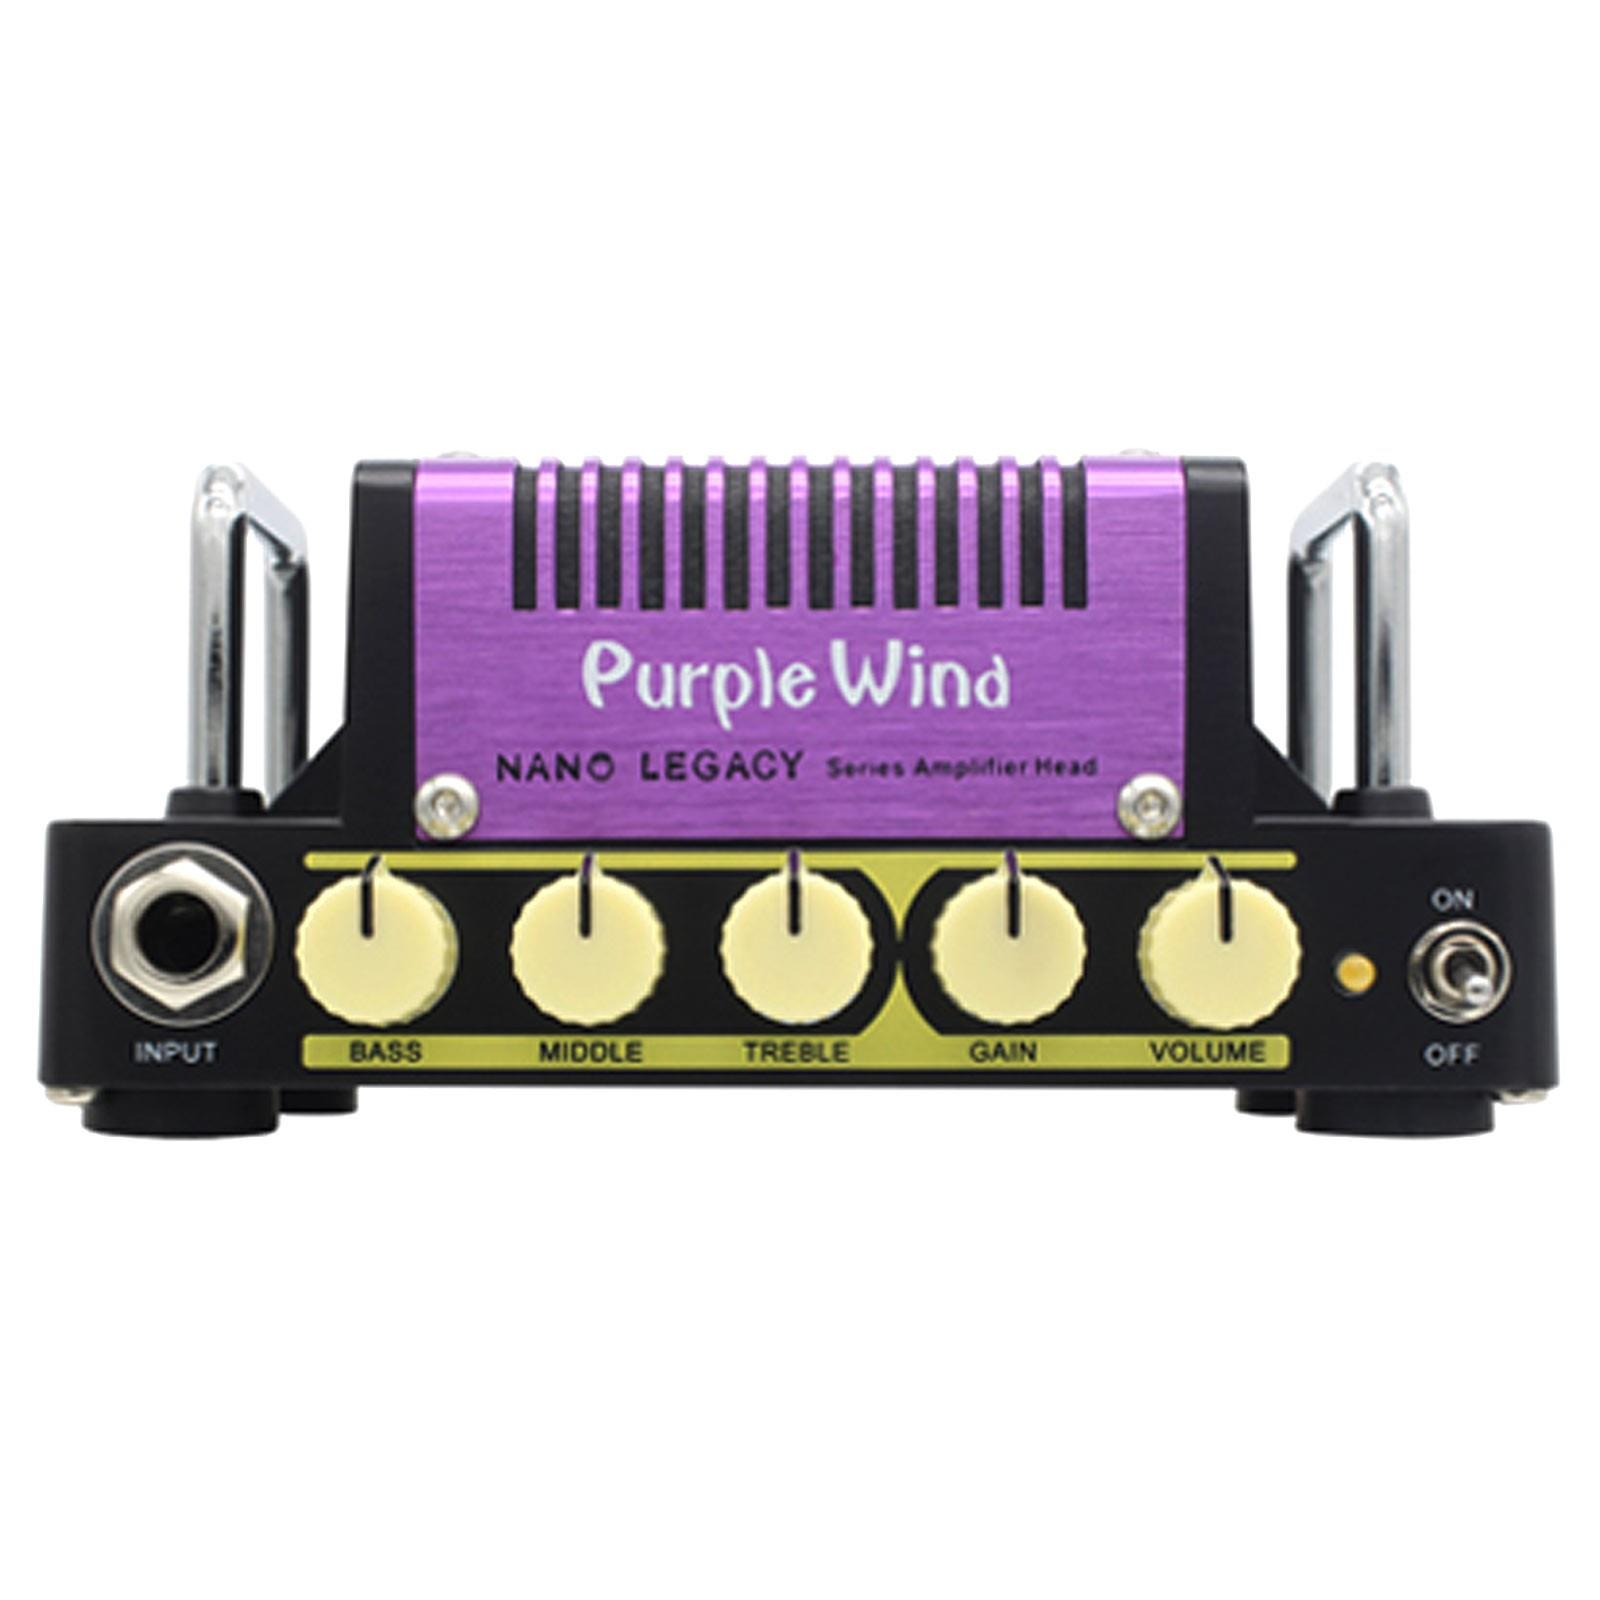 Hotone Nano Legacy Purple Wind 5w Class AB Mini Guitar Amp